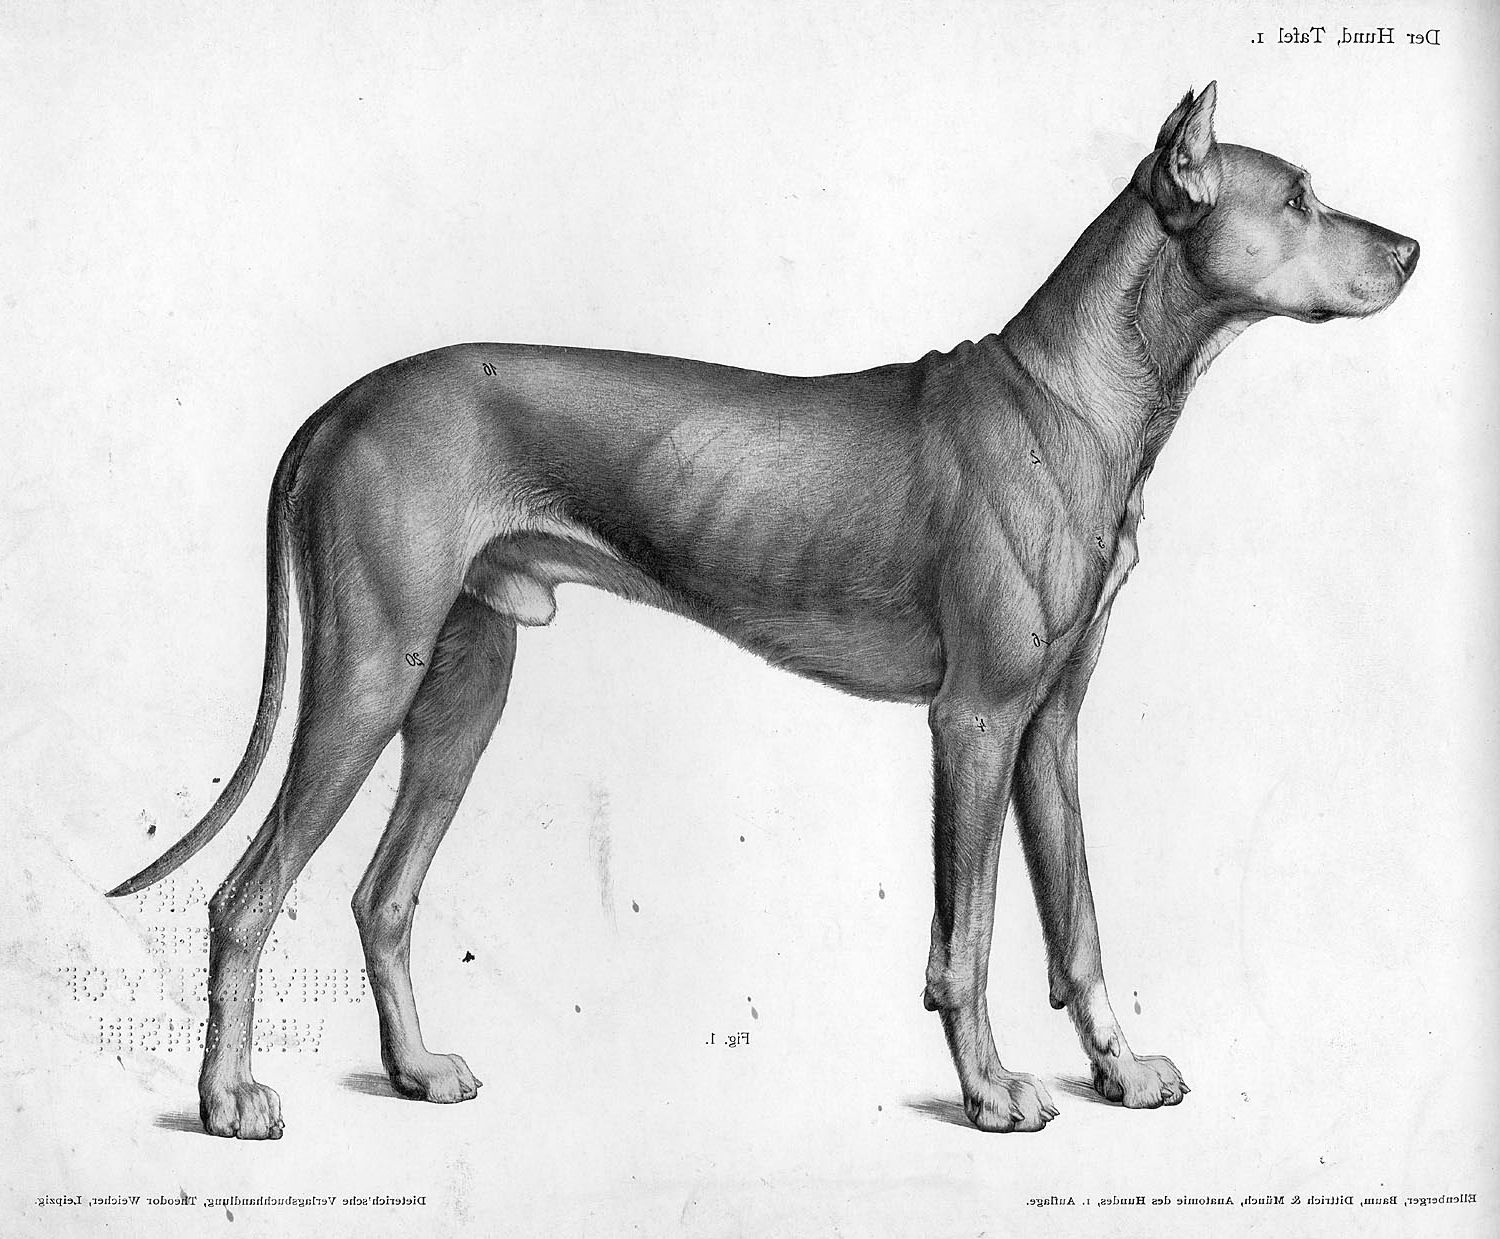 Vintage dog anatomy drawing | Burt tattoo | Pinterest | Dog anatomy ...